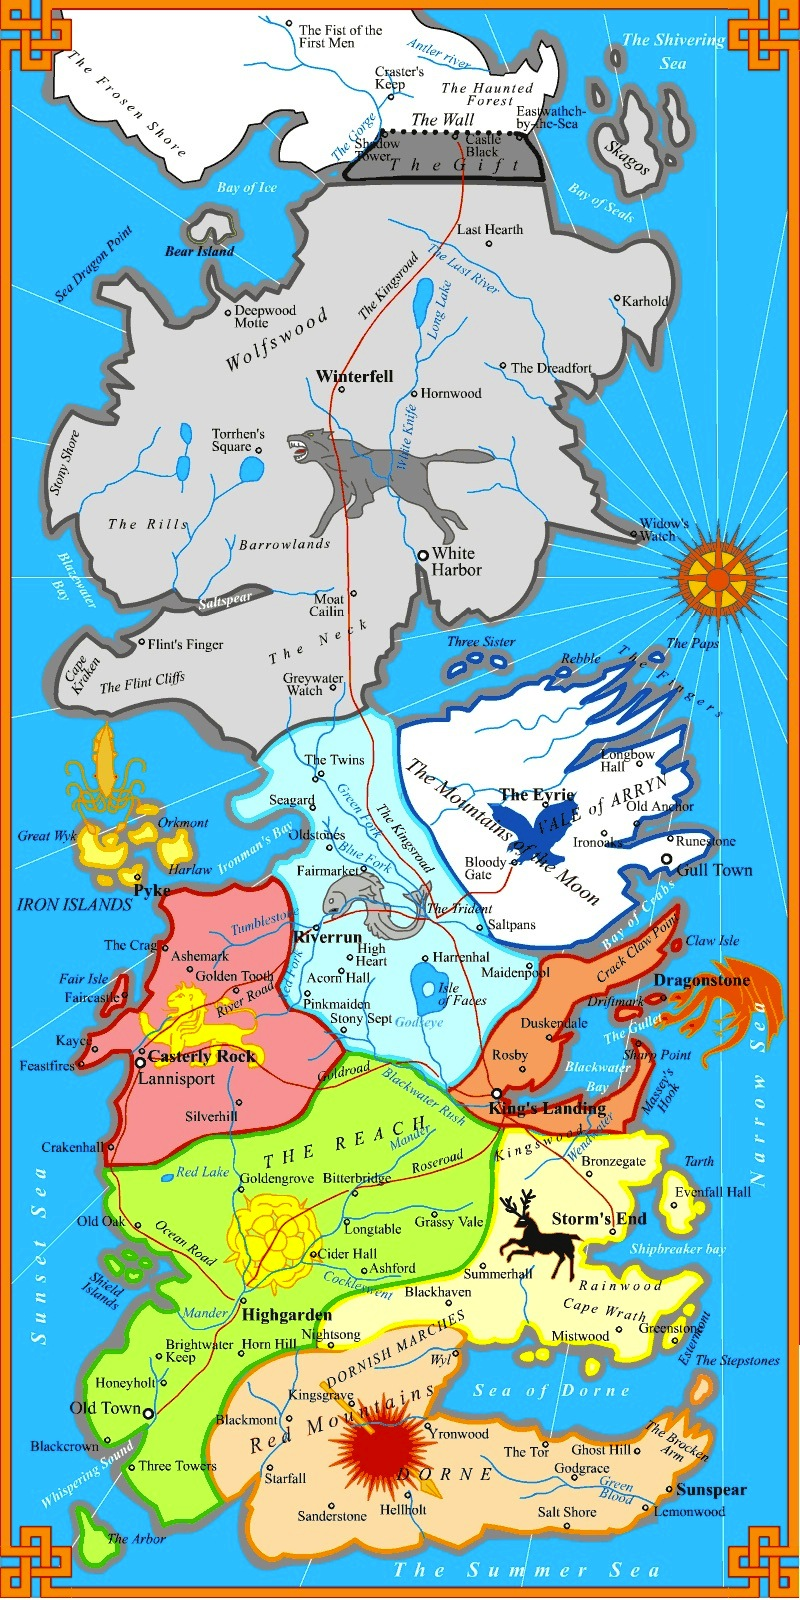 Image map westeros political2g game of thrones chronicles of map westeros political2g gumiabroncs Choice Image